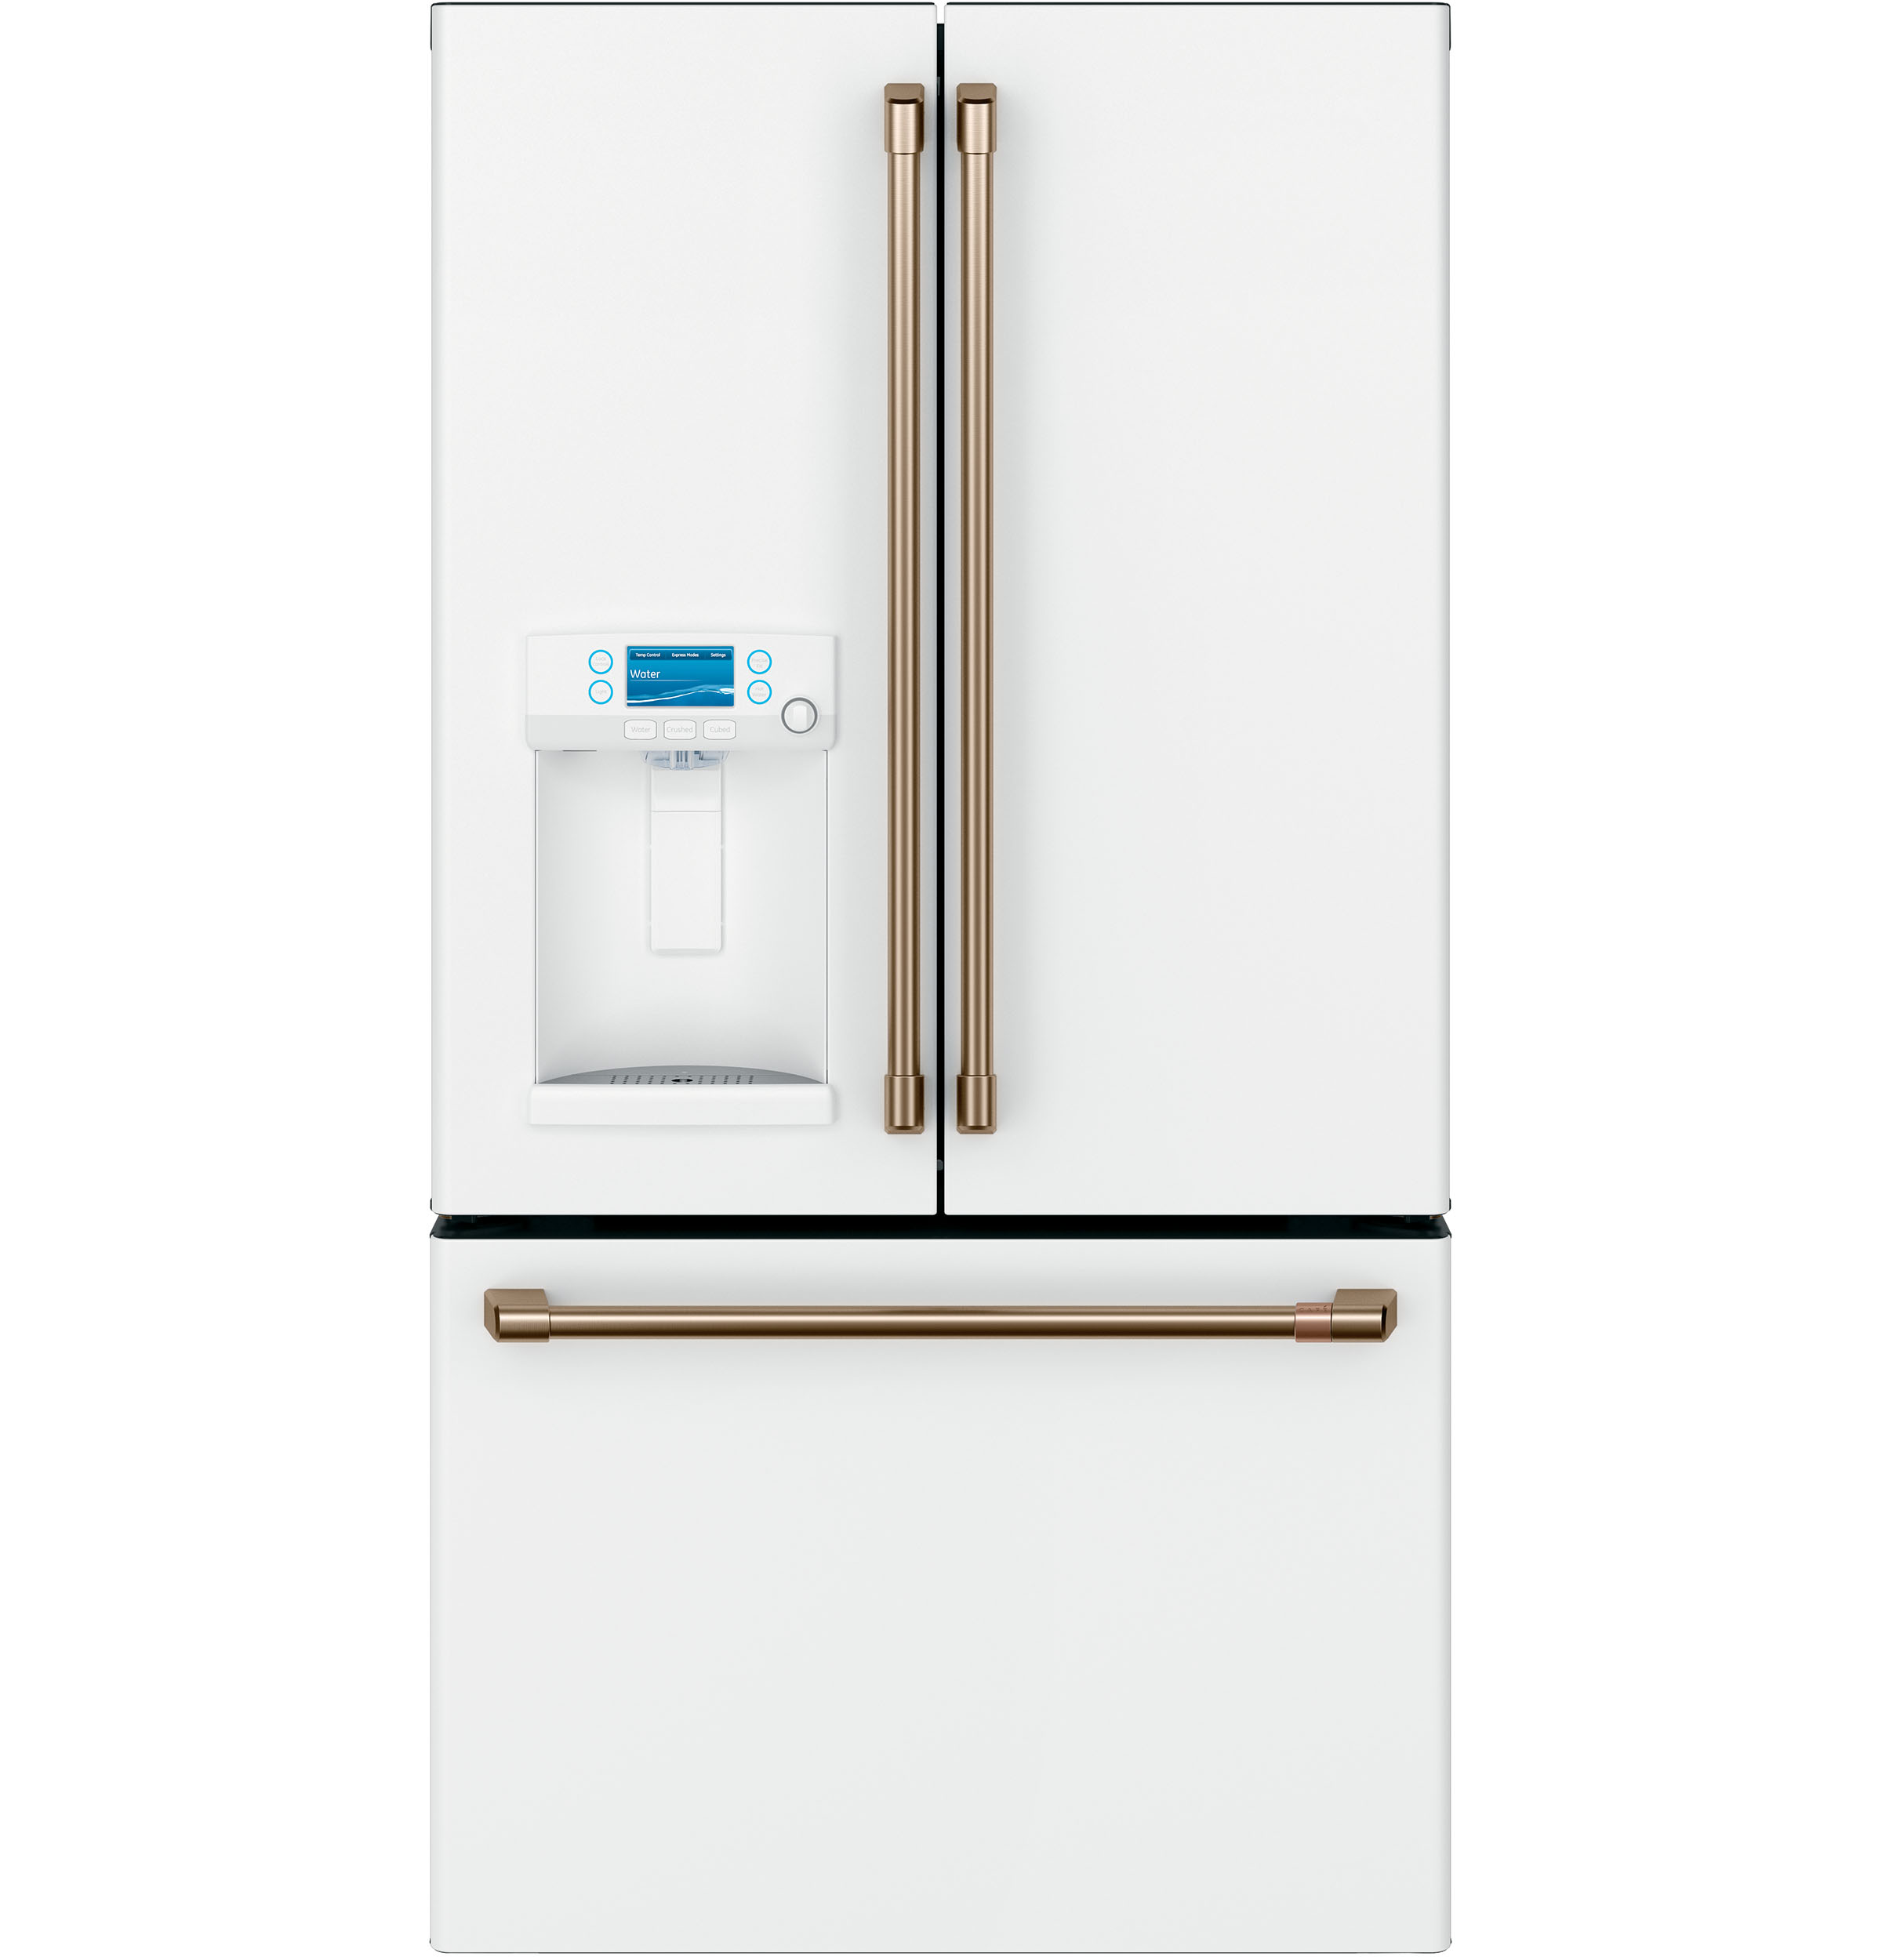 Cafe Café™ ENERGY STAR® 27.7 Cu. Ft. Smart French-Door Refrigerator with Hot Water Dispenser